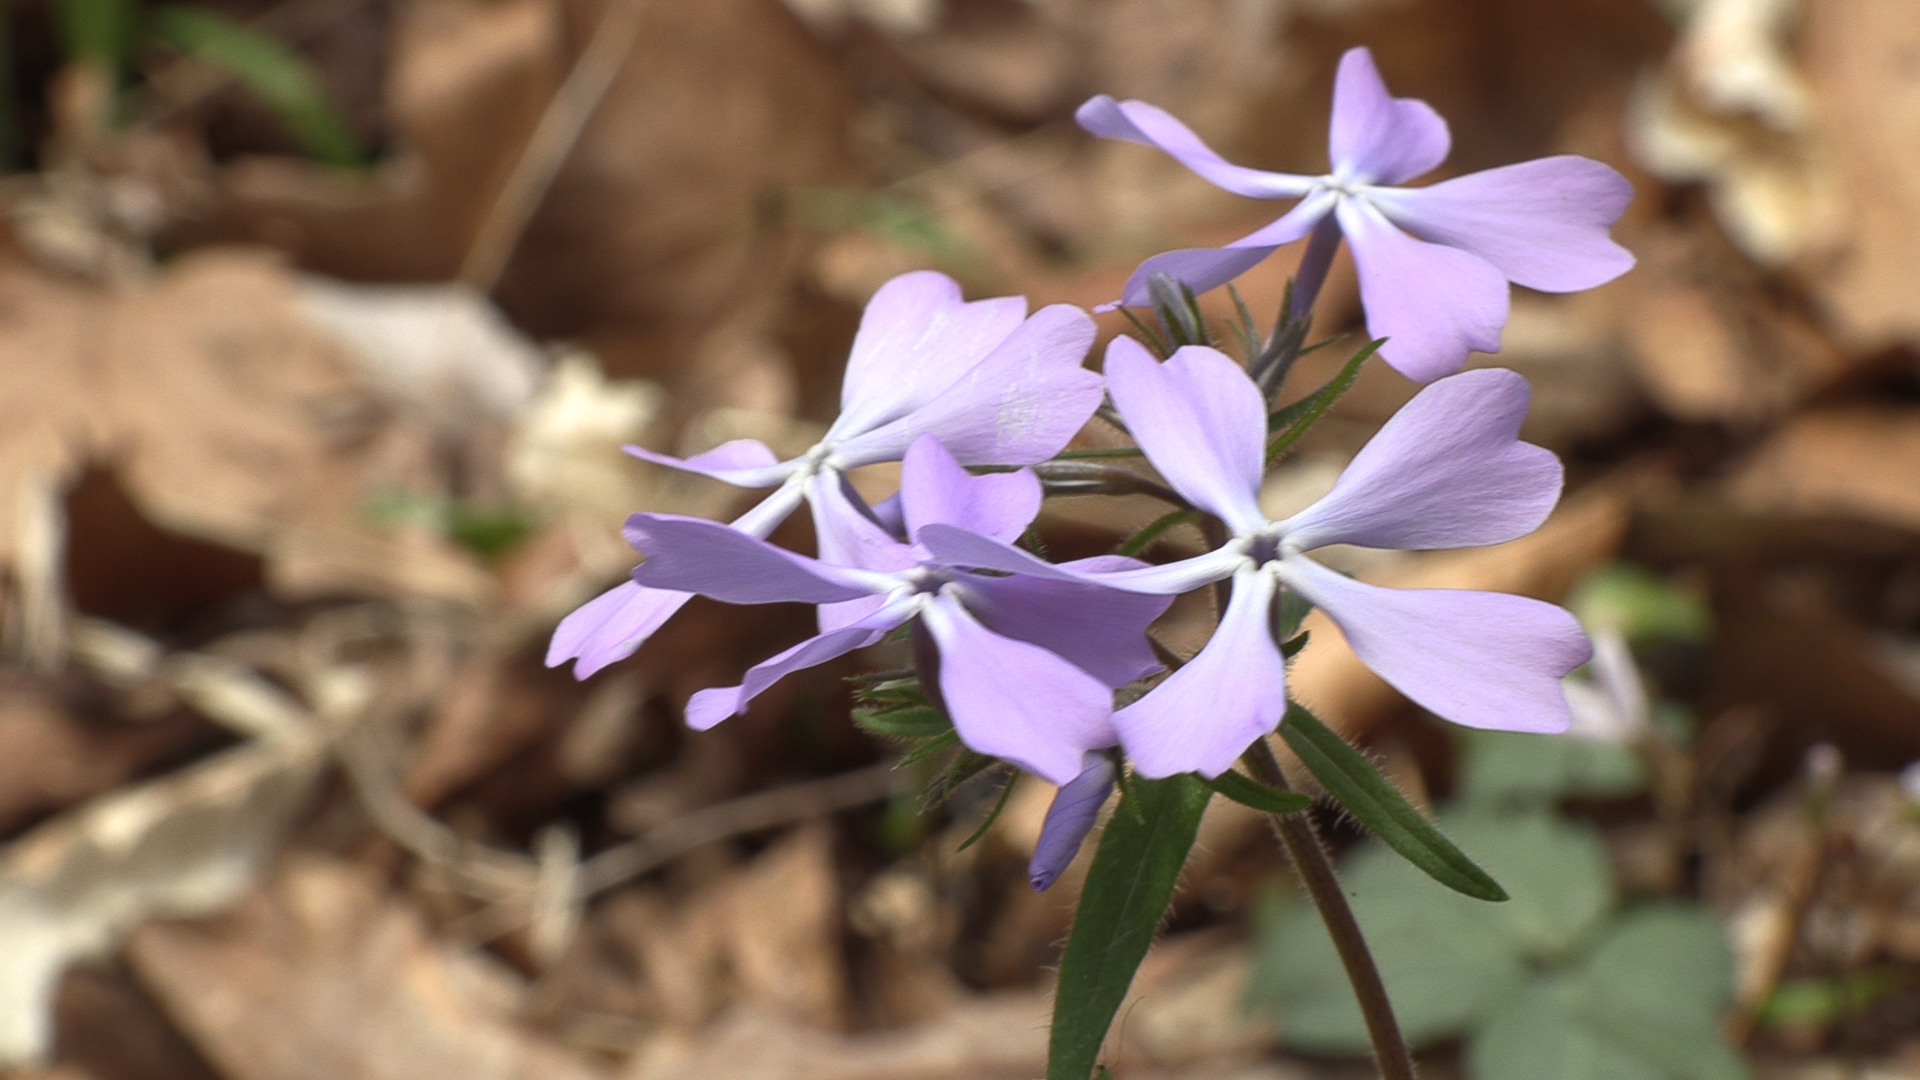 On this picture you can see a violet-colored cleft phlox flower.